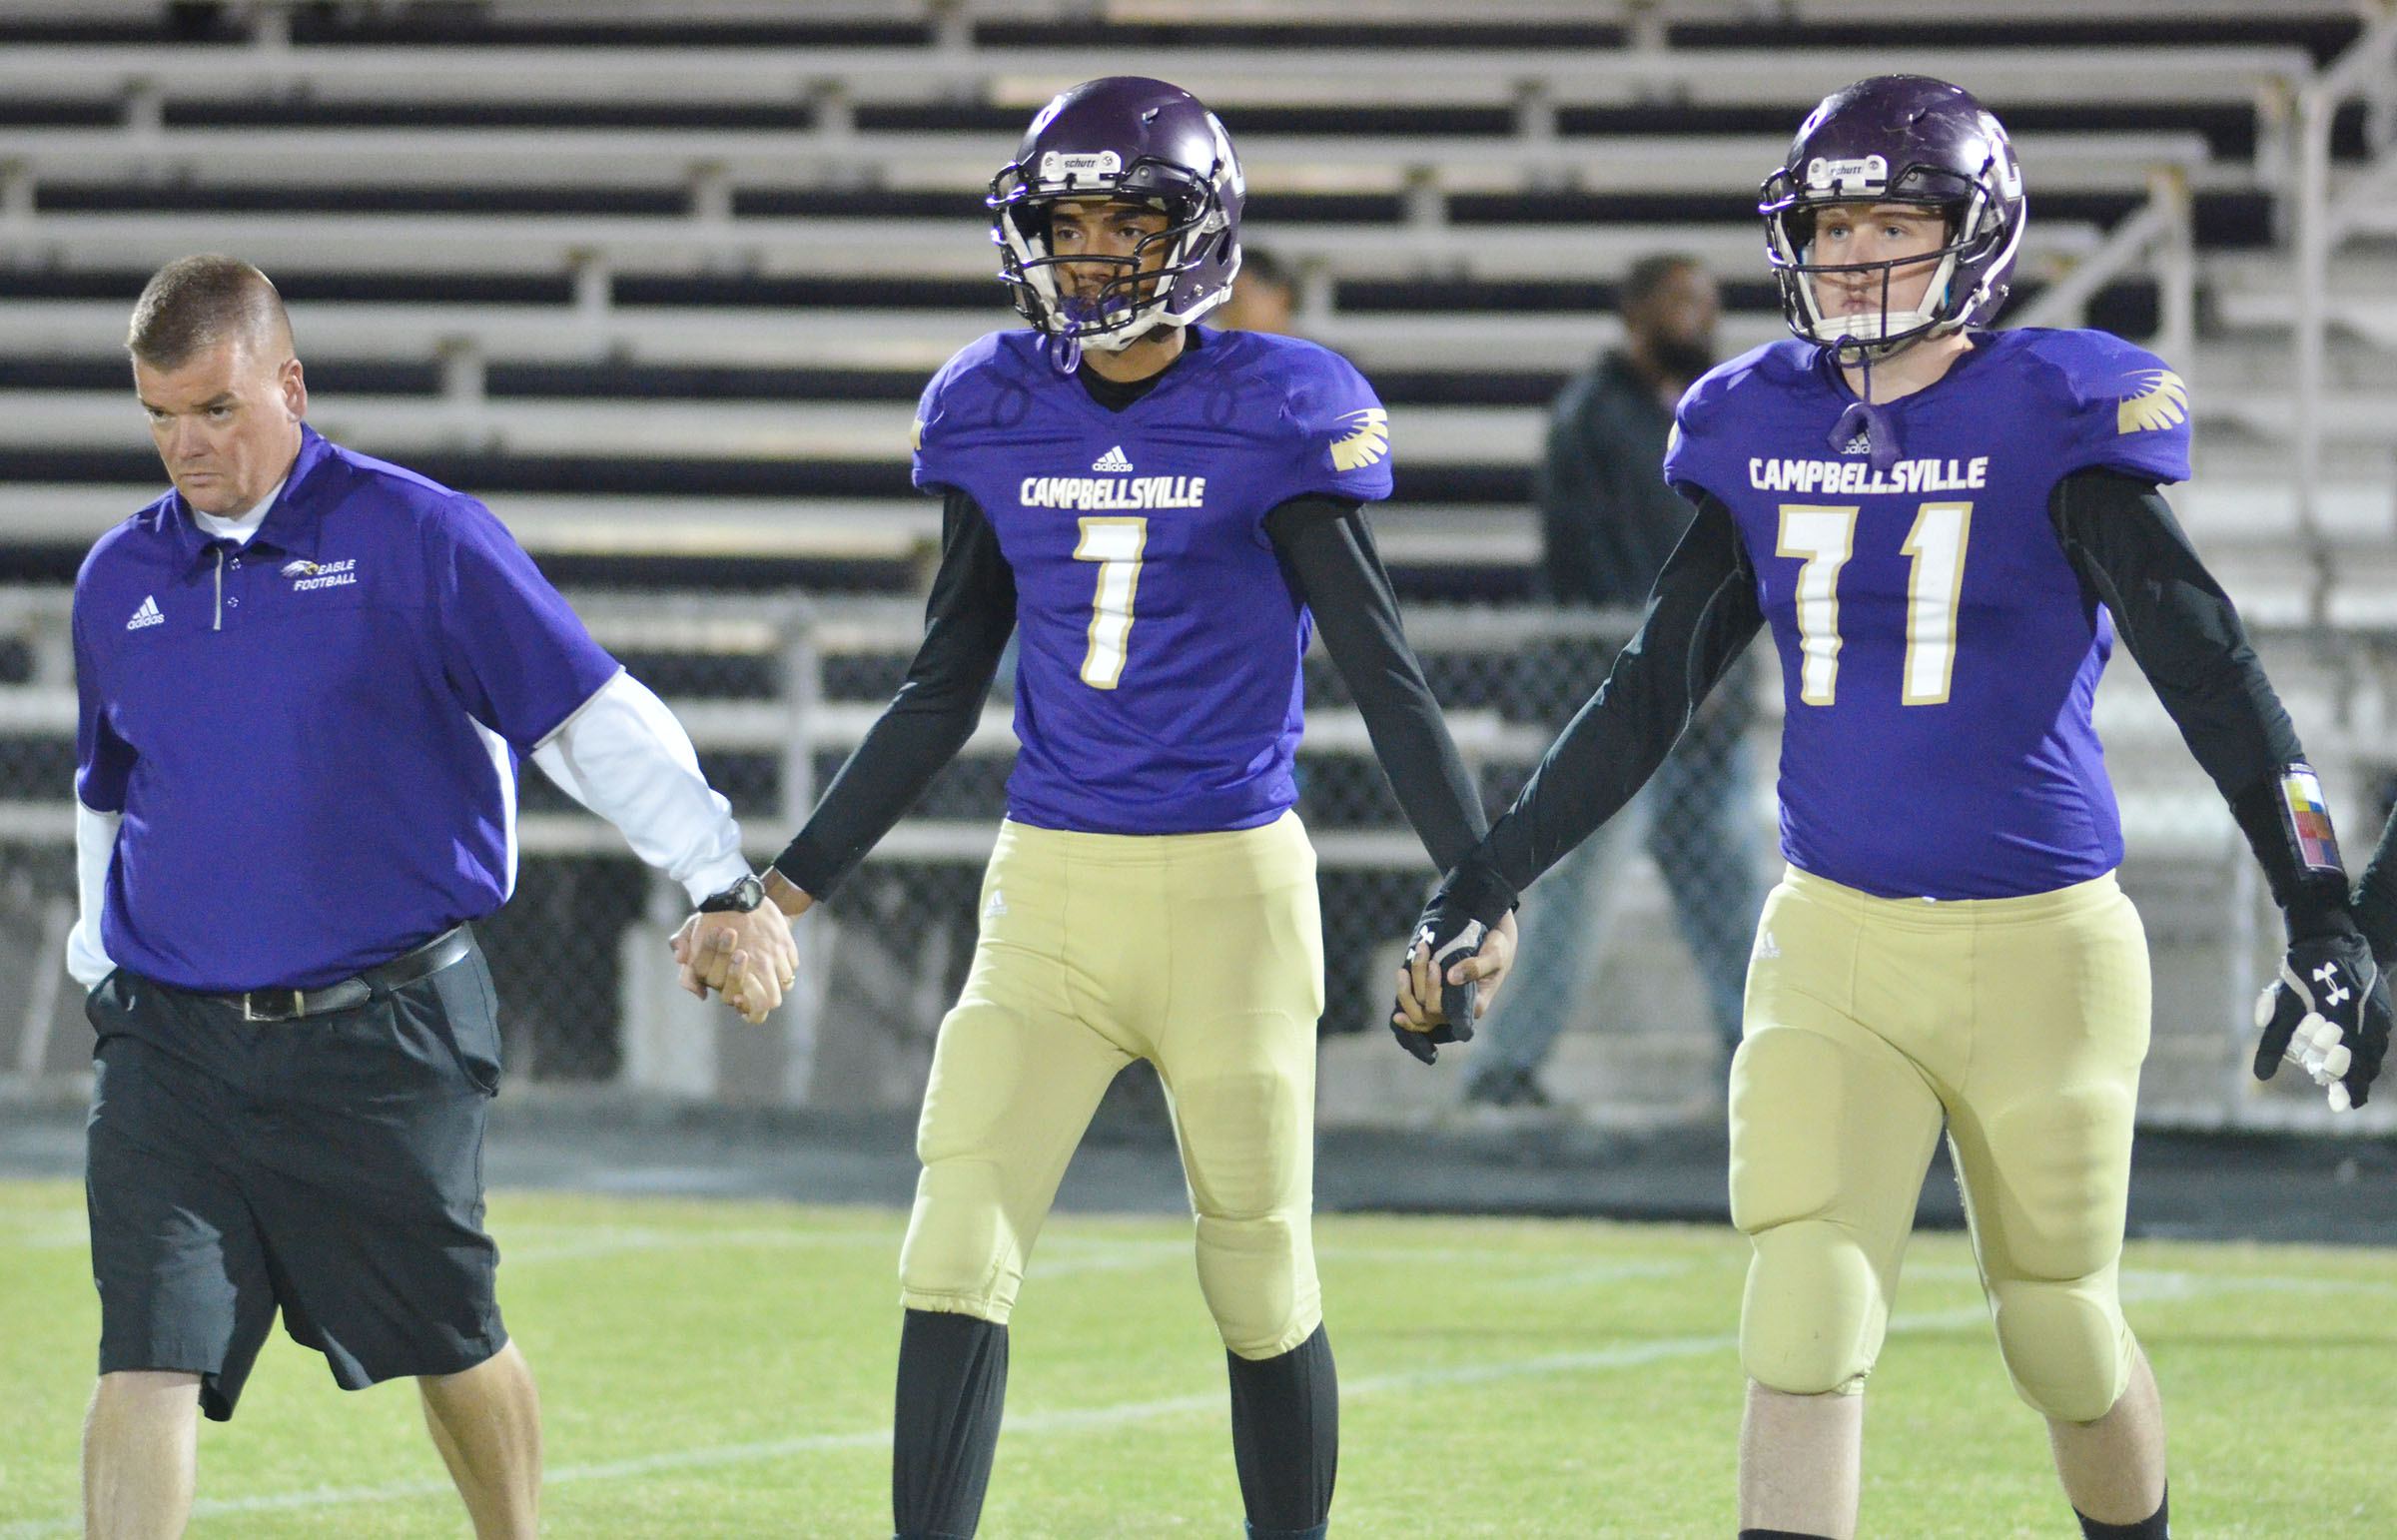 CHS seniors Daniel Silva, at left, and Jared Brewster walk with head coach Dale Estes for the coin toss.